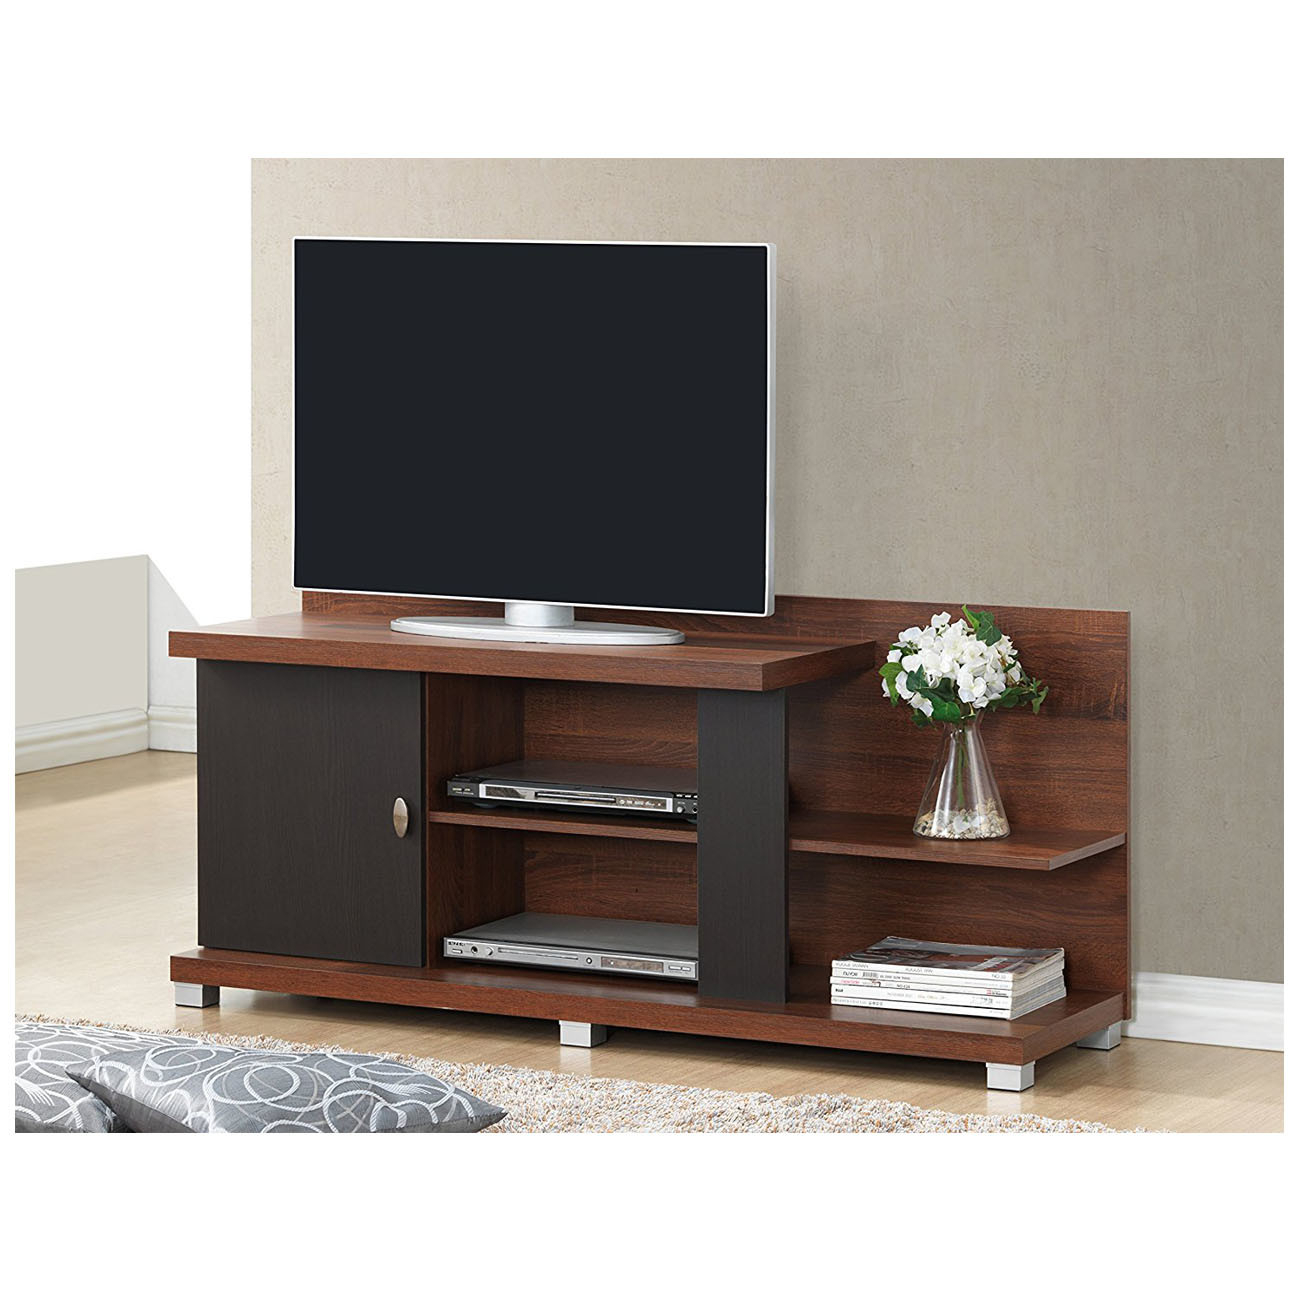 China Simple Tv Stand Parts Furniture Wood Tv Cabinet Regarding Tv Stands Cabinets (View 13 of 15)